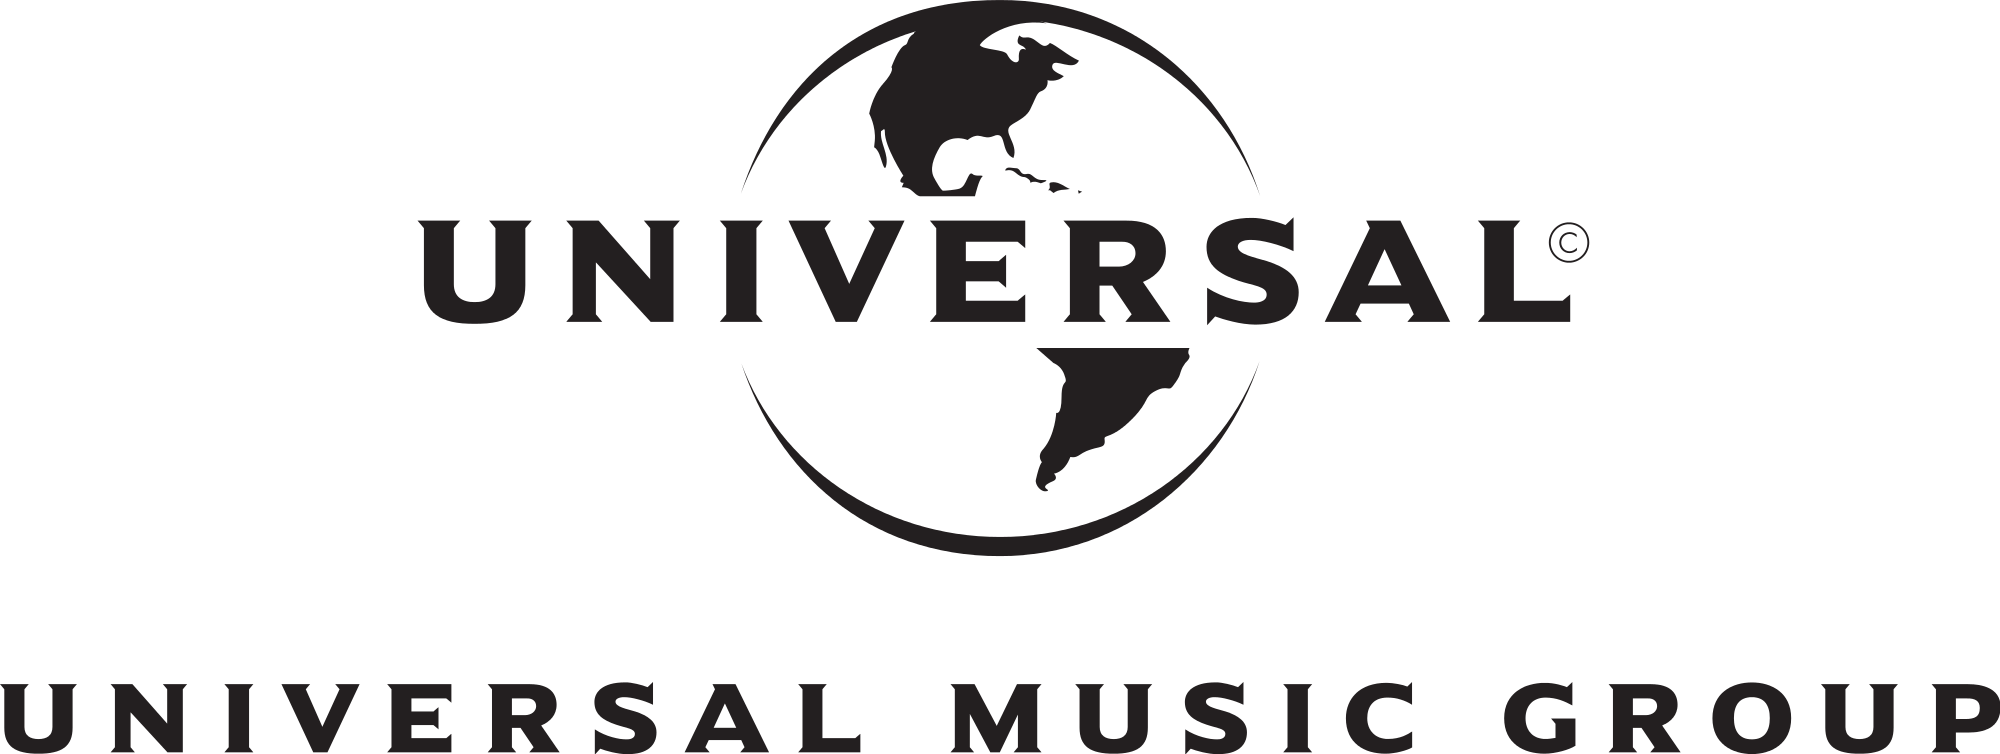 universal-music-group ID.png